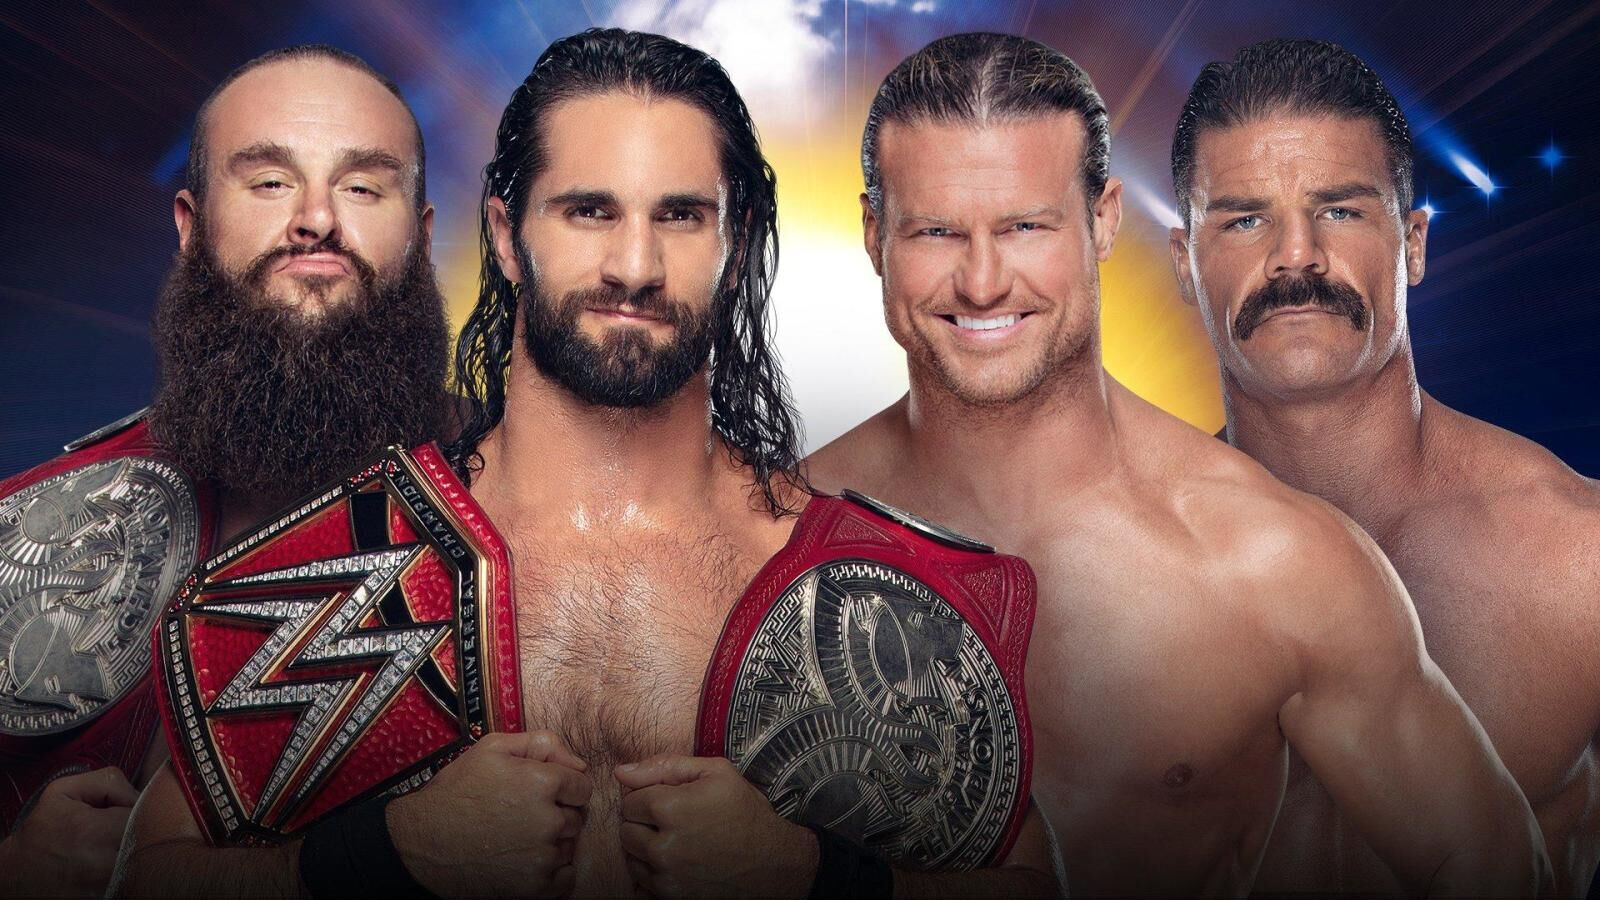 WWE Clash of Champions: Robert Roode returns to form with Ziggler